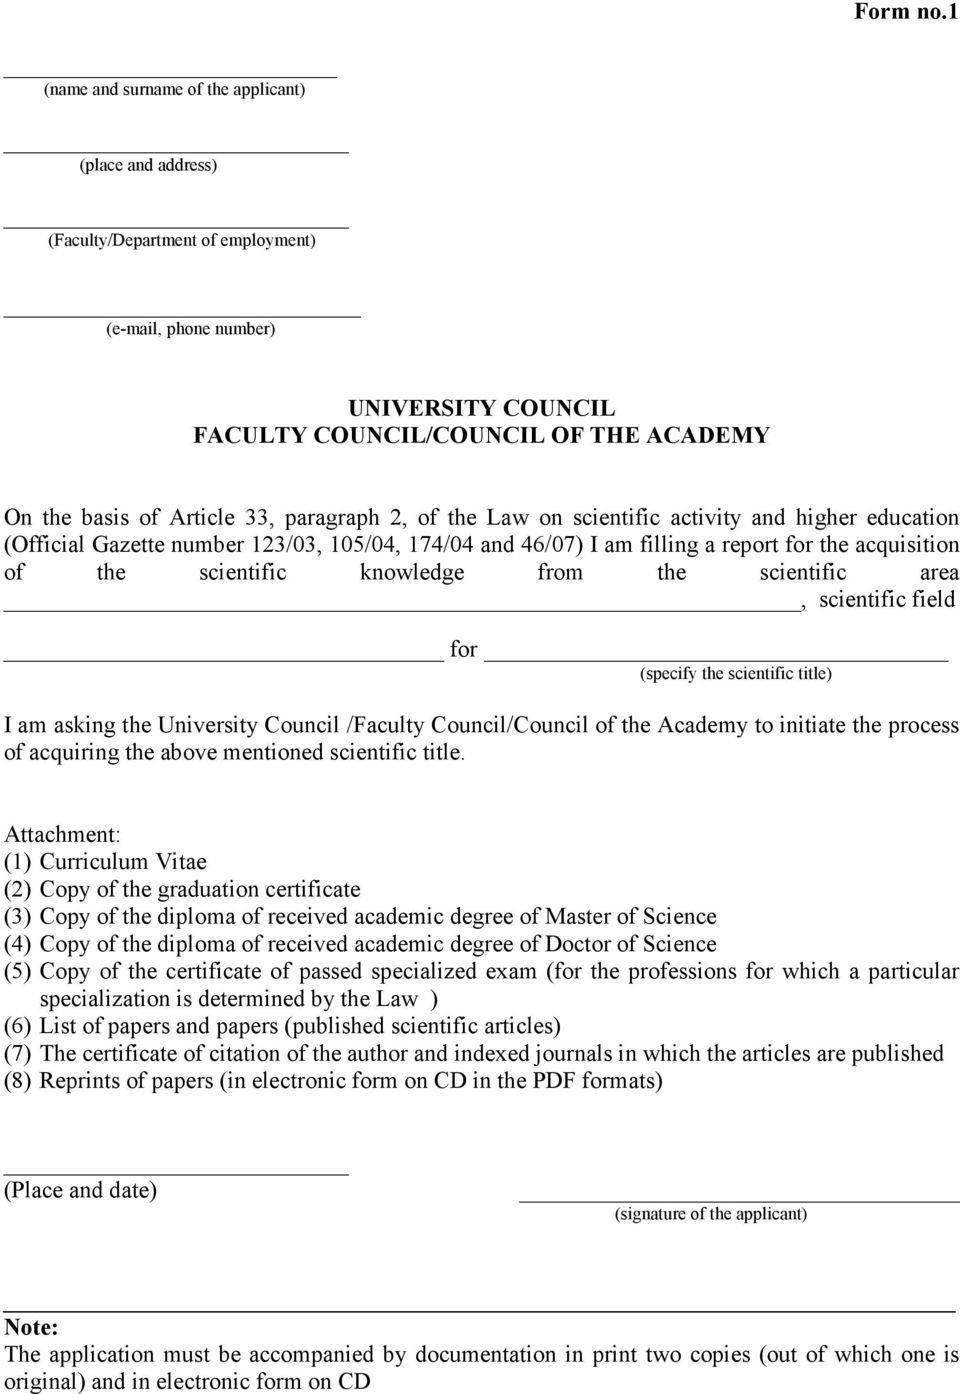 33, paragraph 2, of the Law on scientific activity and higher education (Official Gazette number 123/03, 105/04, 174/04 and 46/07) I am filling a report for the acquisition of the scientific